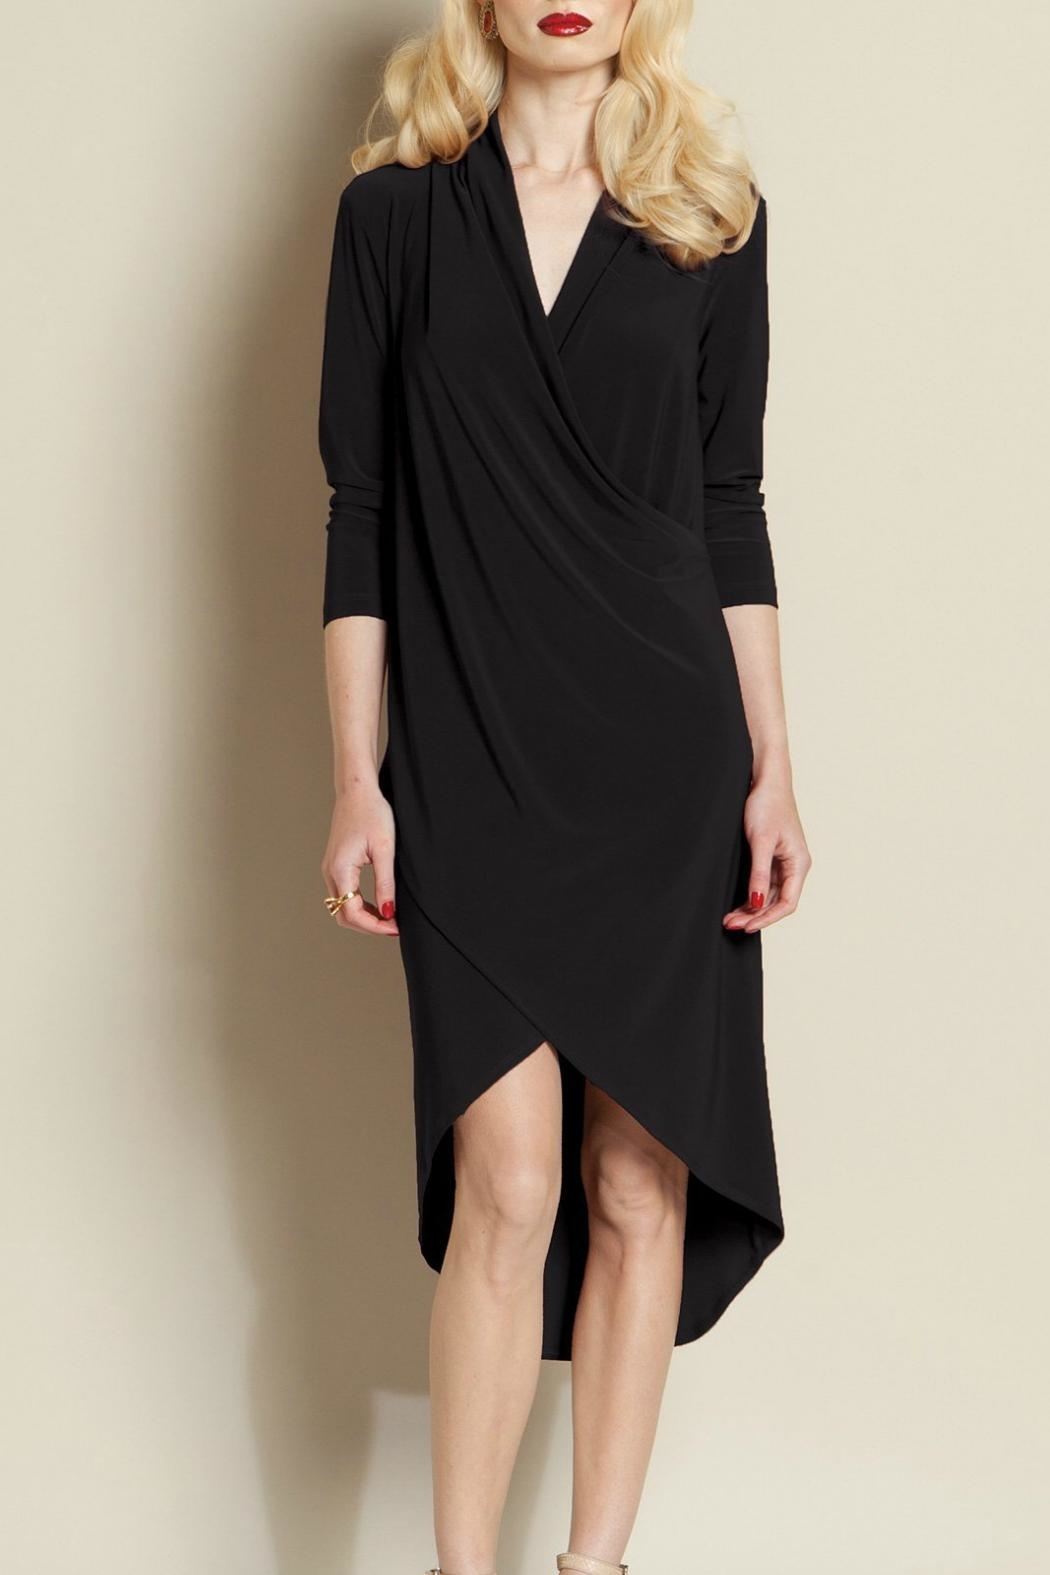 Clara Sunwoo Crossover Knit Dress - Front Cropped Image